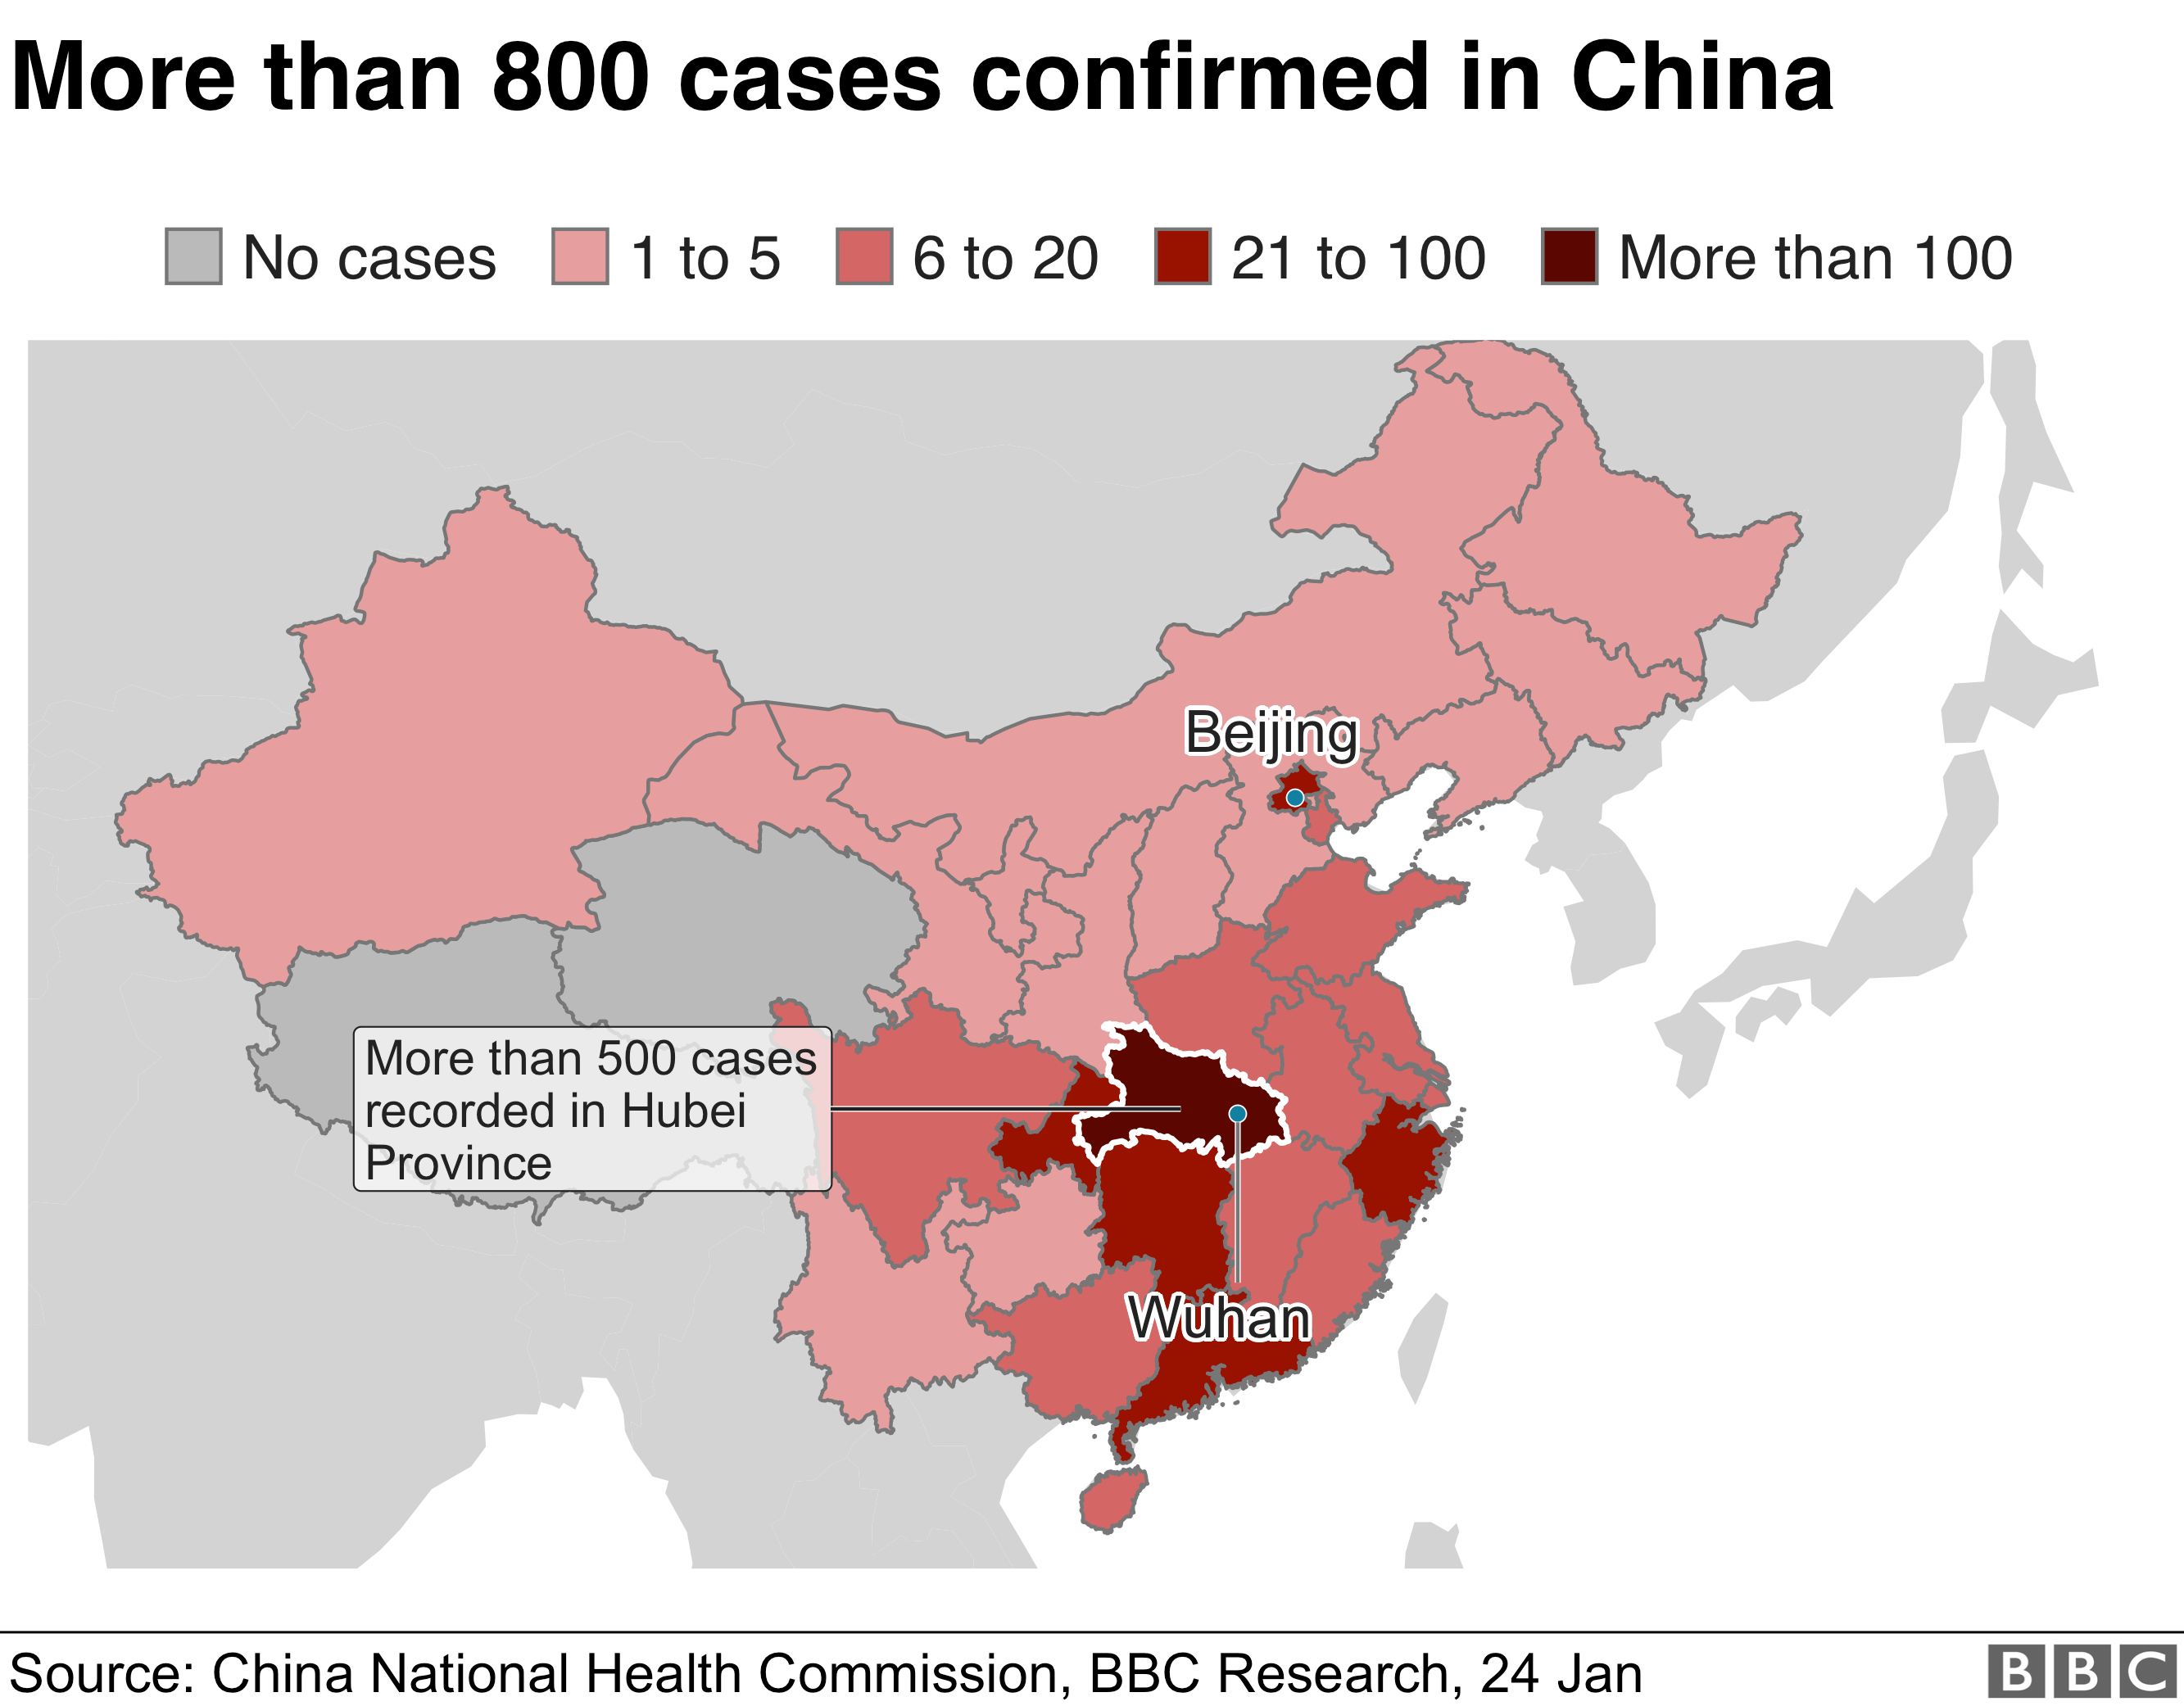 A heatmap shows the spread of the virus in China